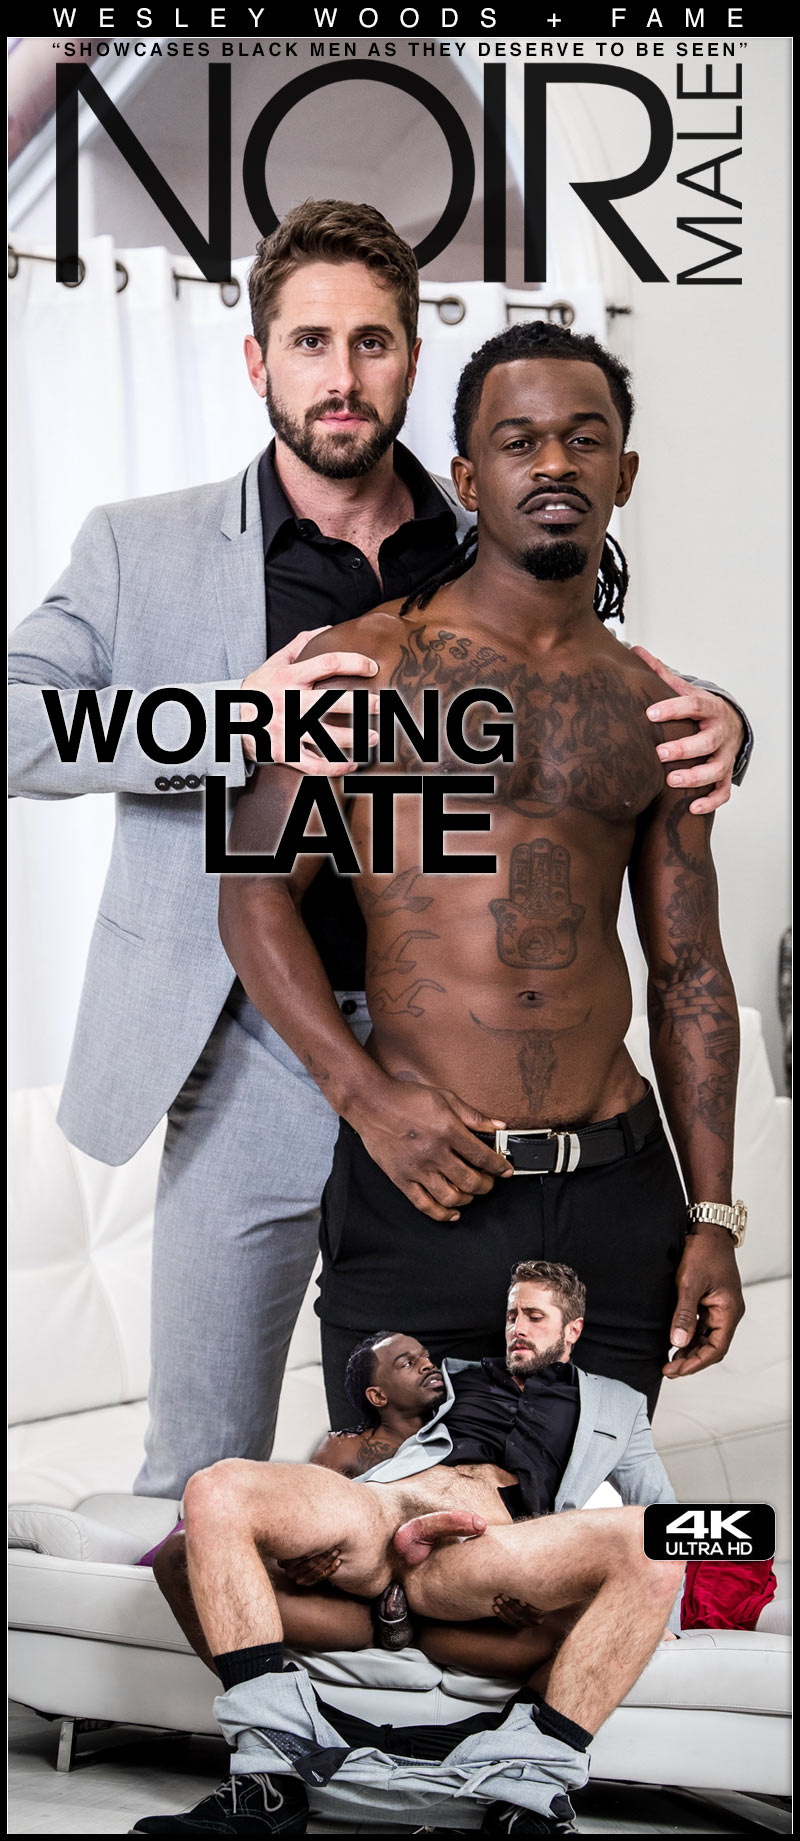 Working Late (Fame Fucks Wesley Woods) at Noir Male